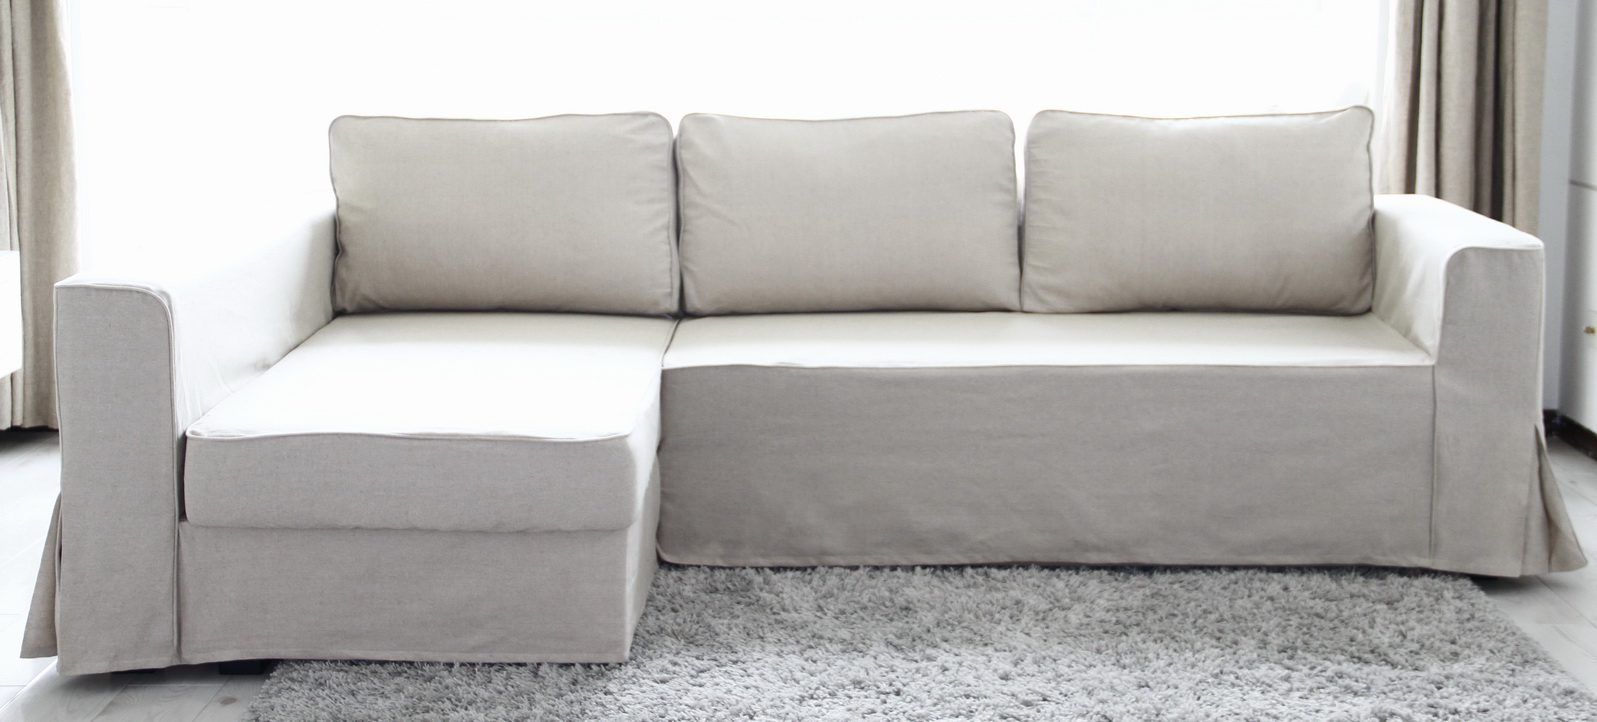 Chaise Lounge Couch Ikea Easy Craft Ideas